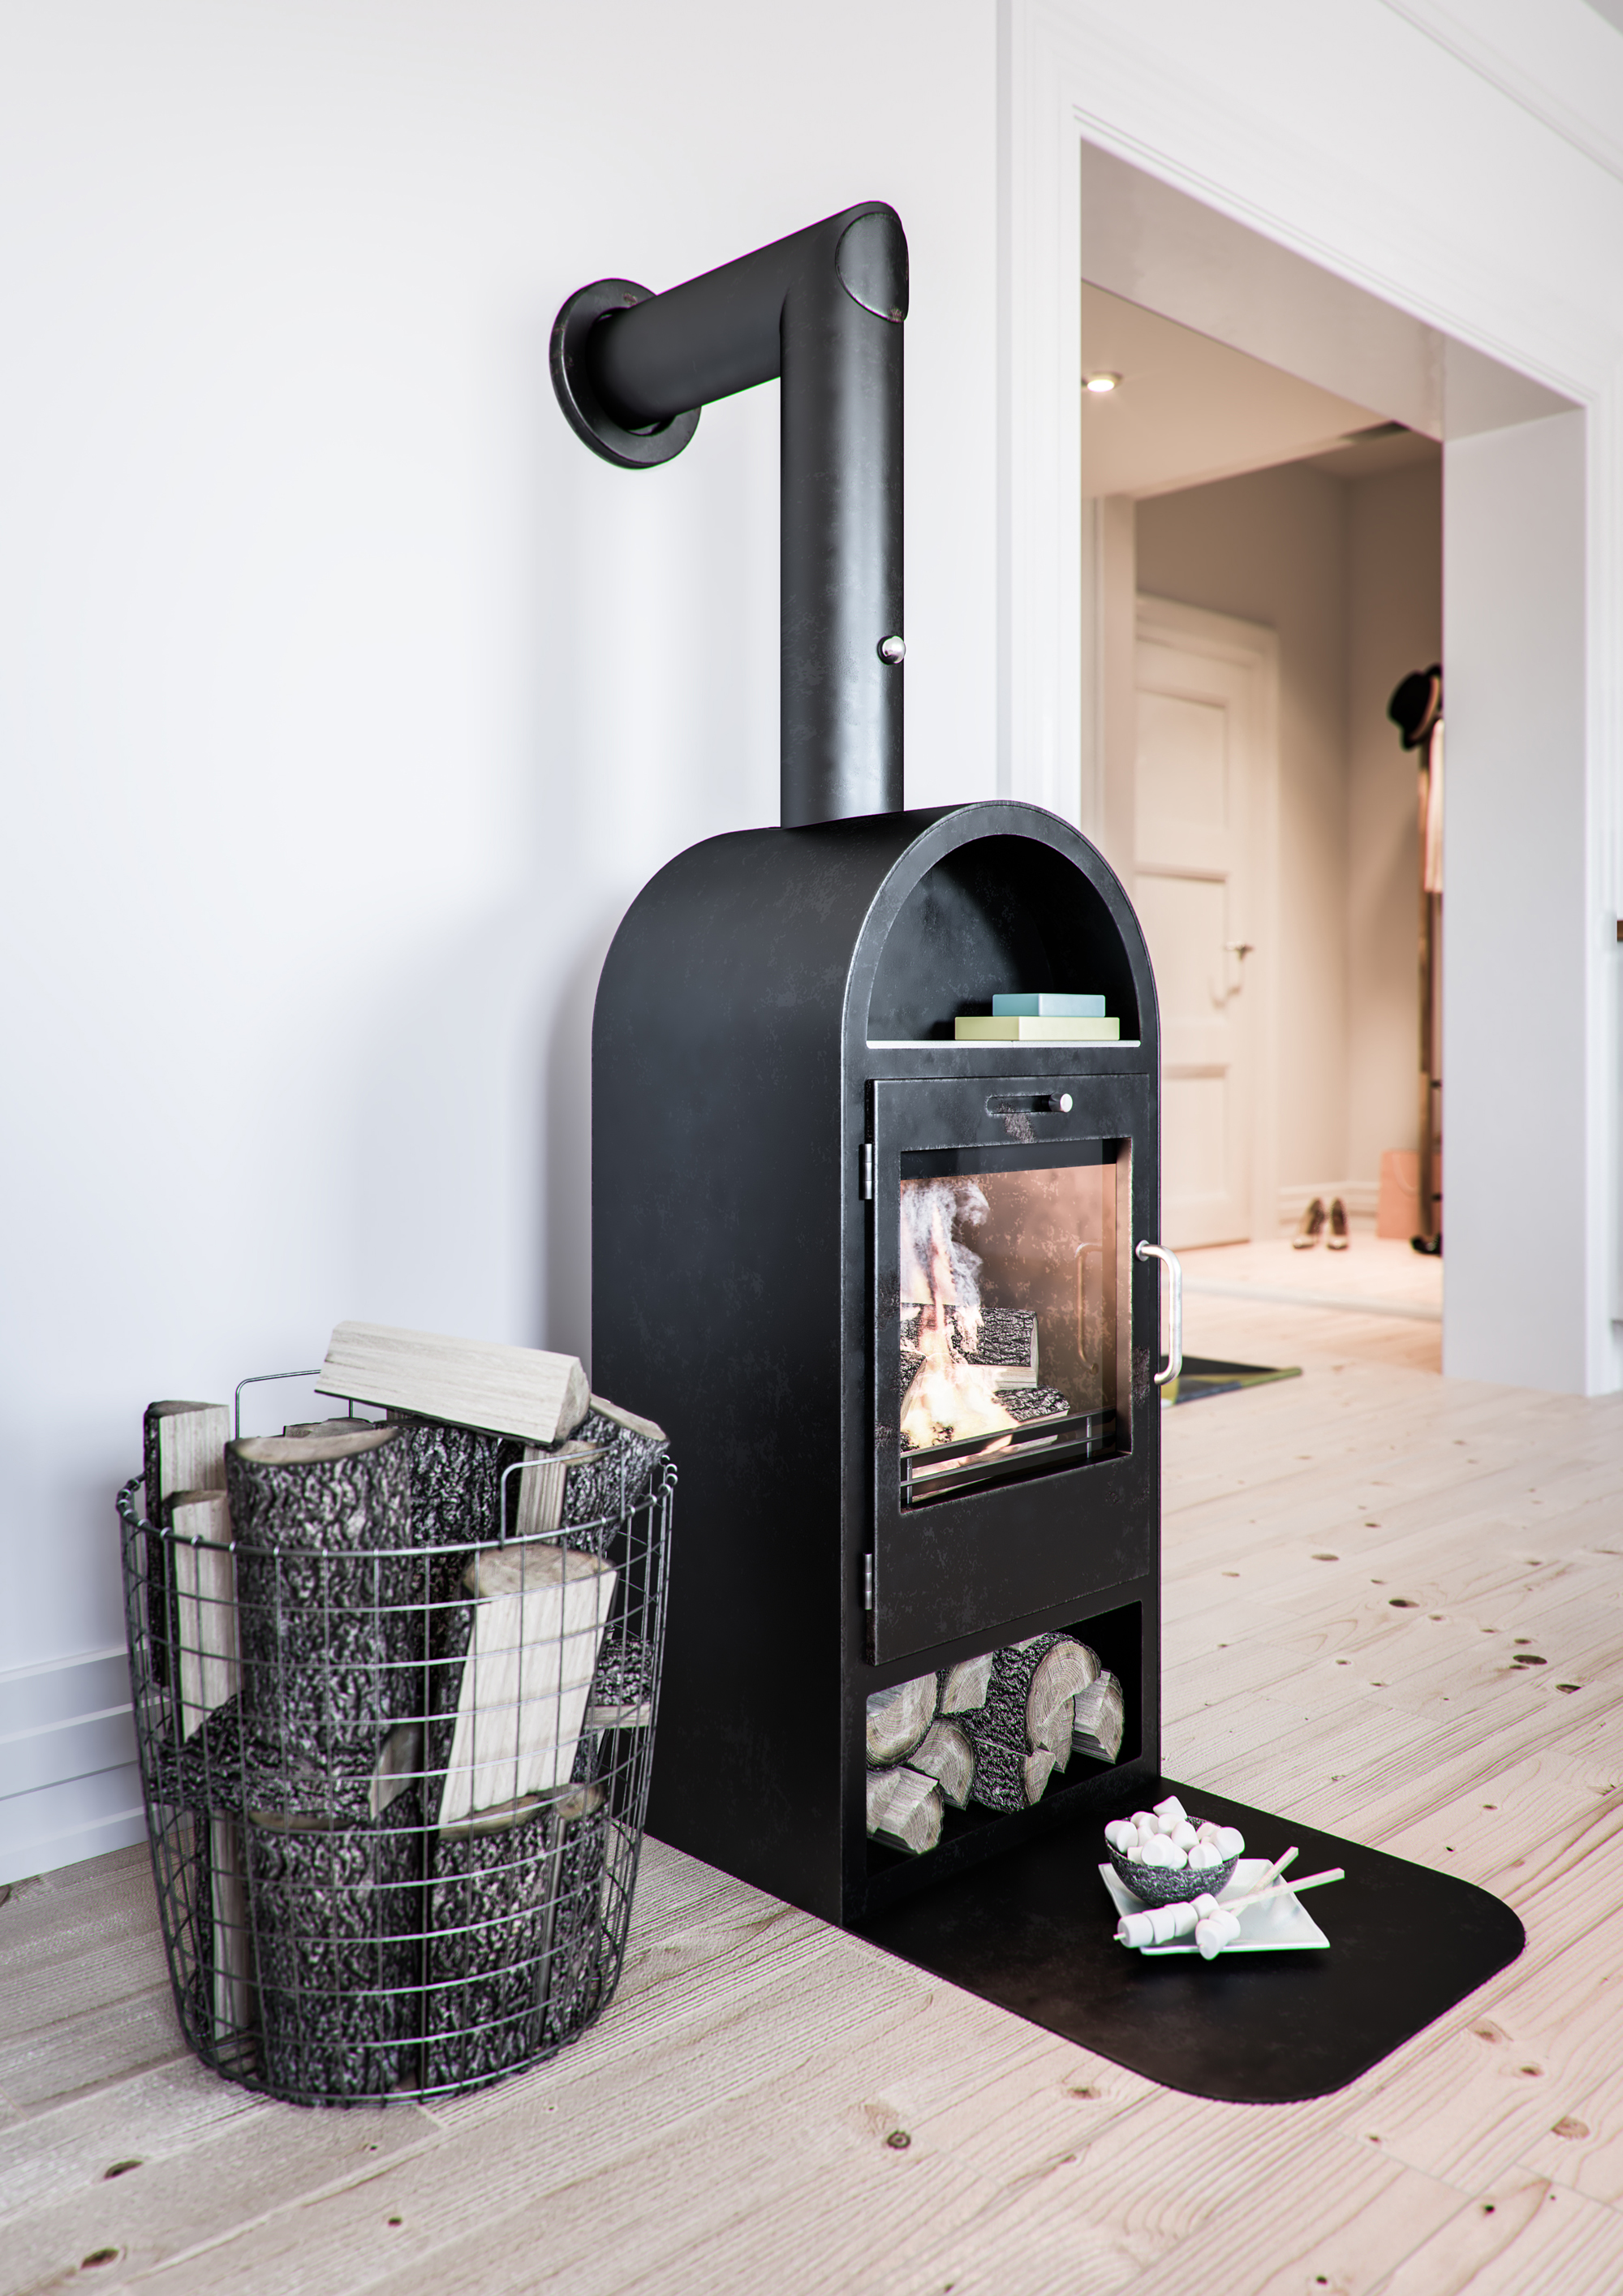 11 - LOG BURNER CLOSE(1).JPG